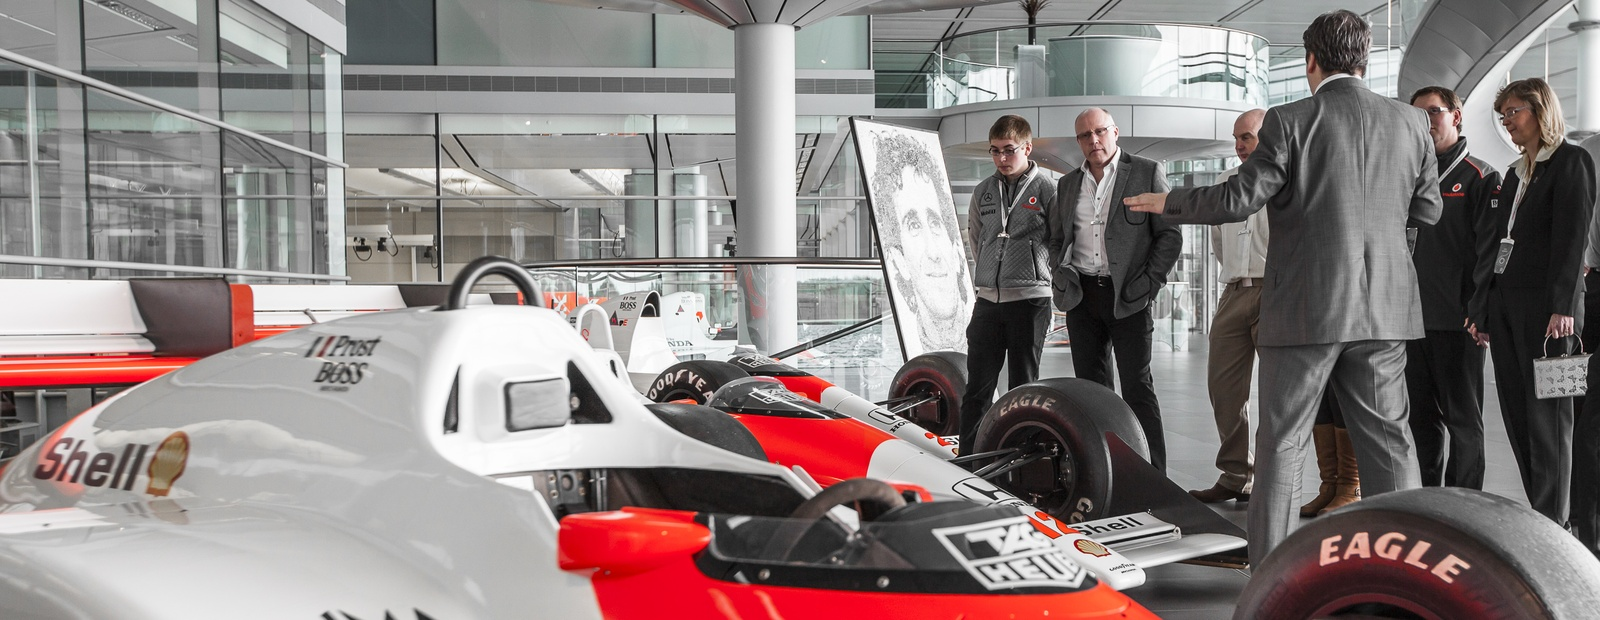 mclaren formula 1 - mclaren technology centre tour - march